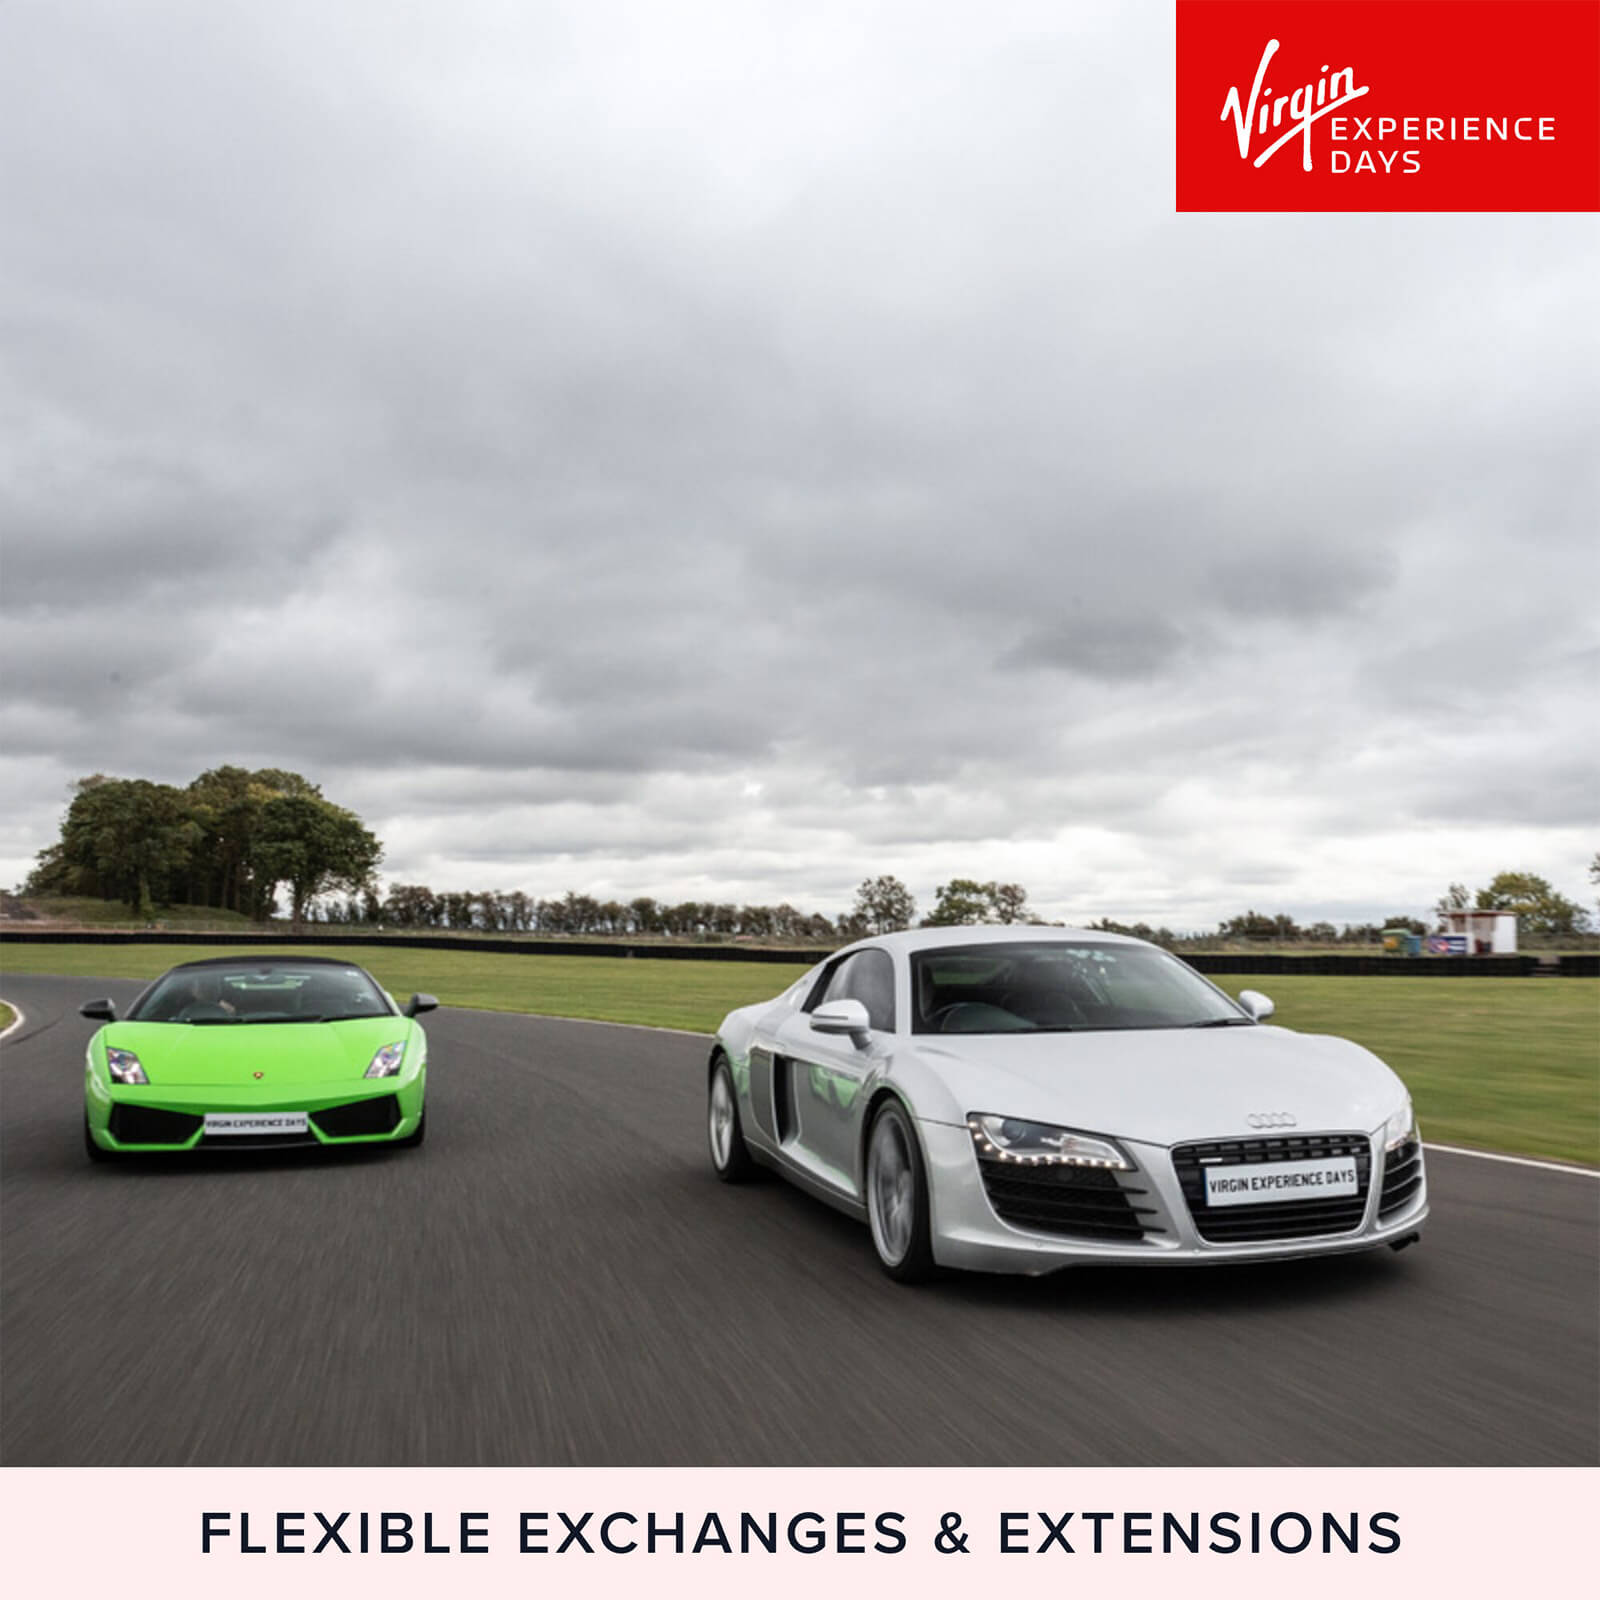 Image of Double Supercar Blast Plus High Speed Passenger Ride and Photo